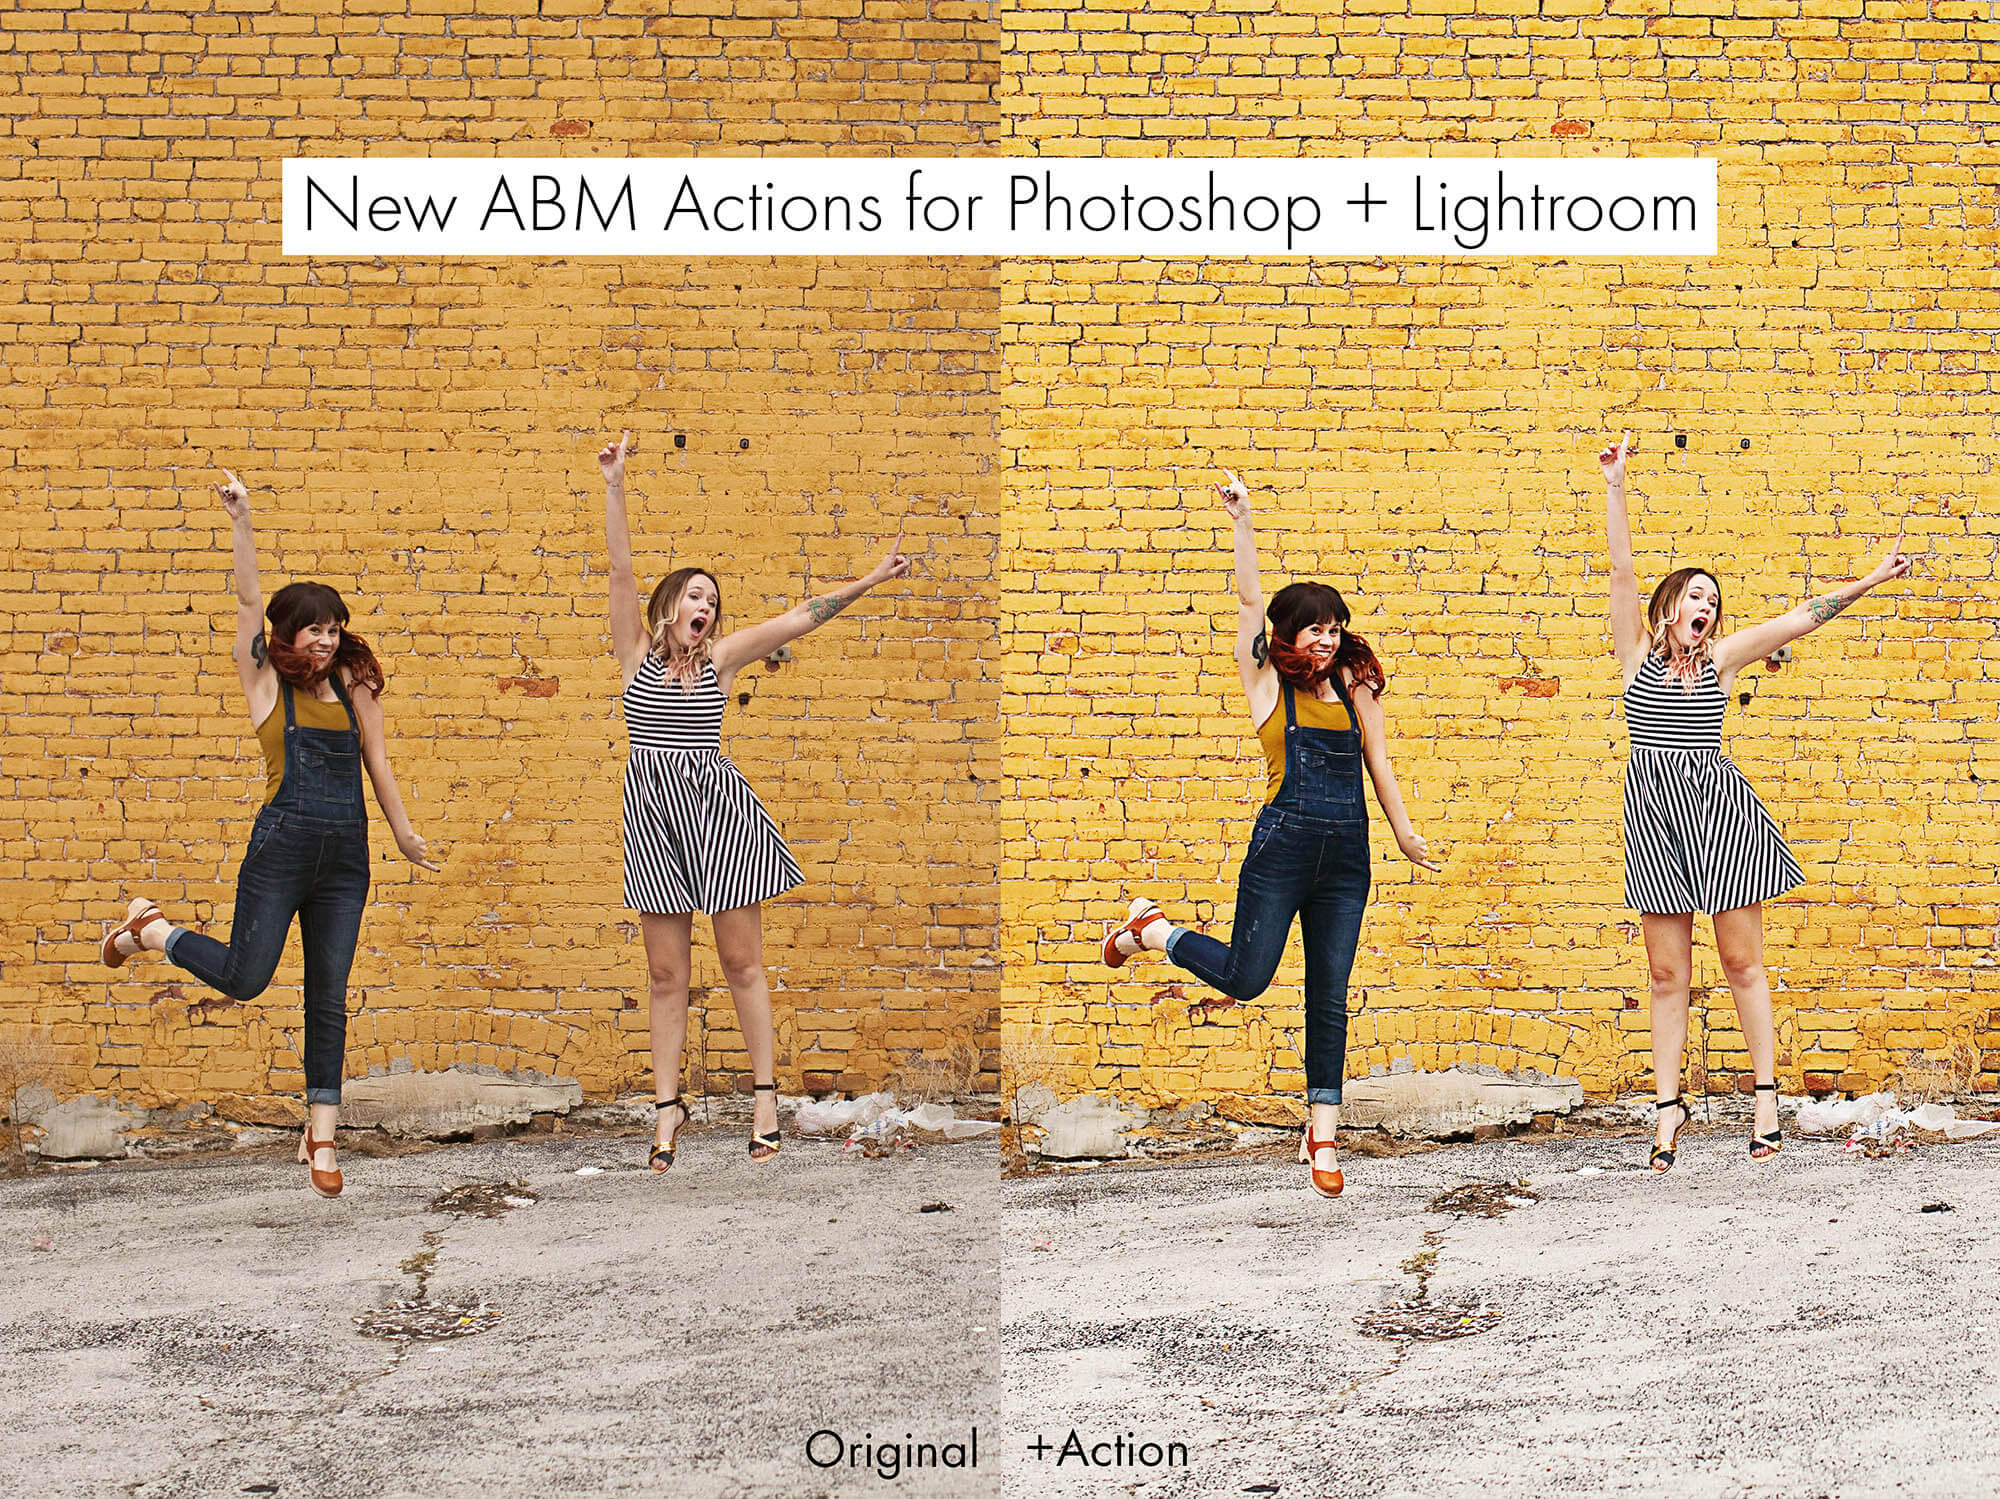 Check out the new ABM actions